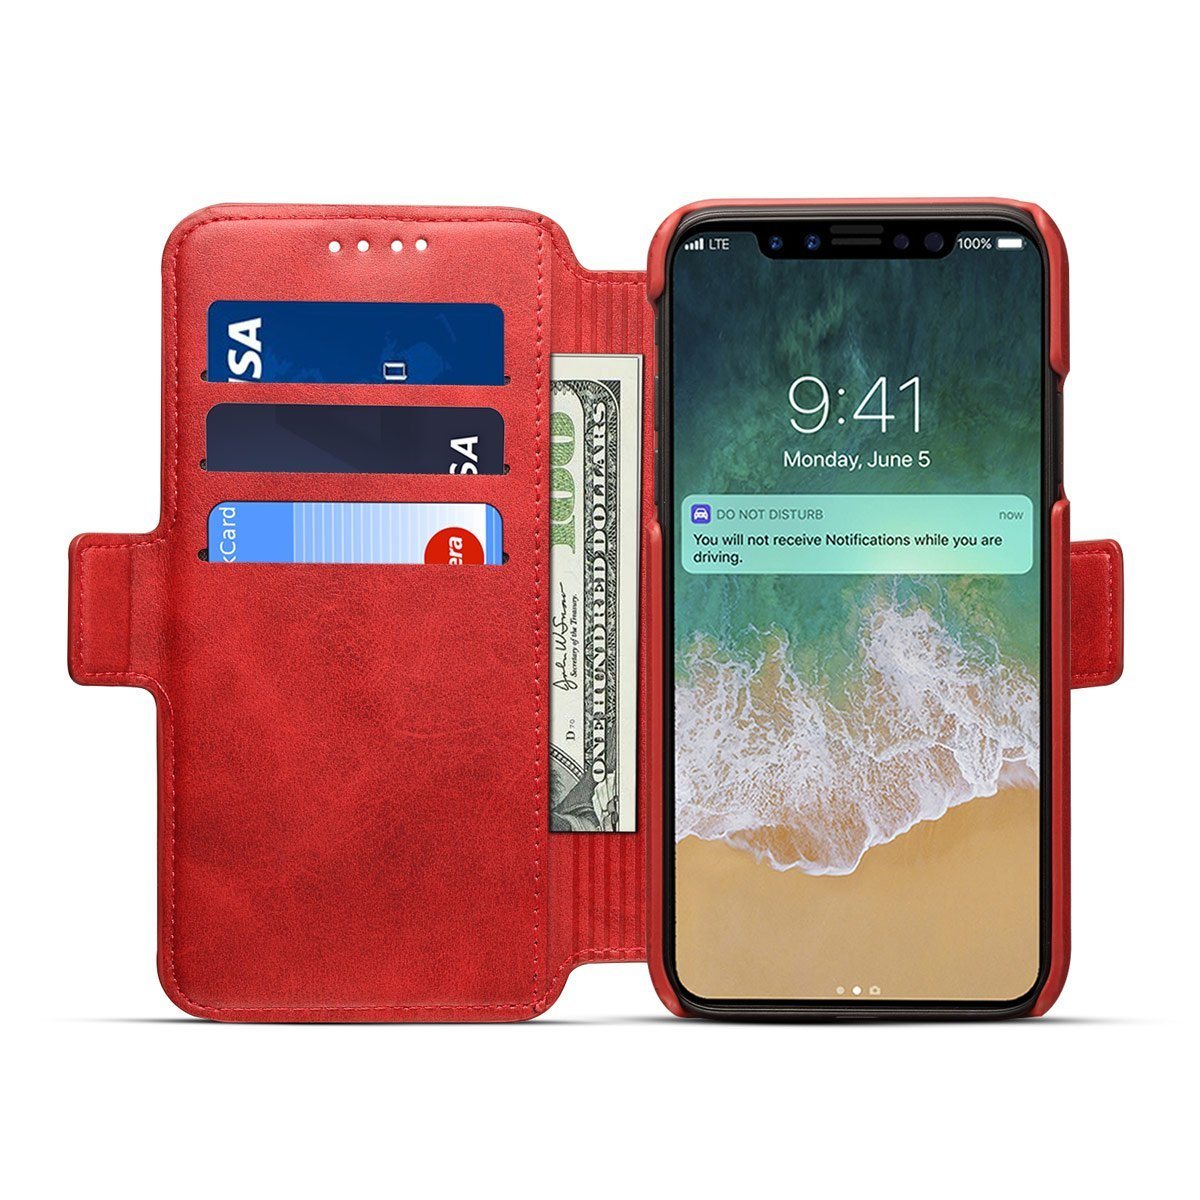 Scheam iPhone X Flip Cover, Case, Skins Card Slot [Stand Feature] Leather Wallet Case Vintage Book Style Magnetic Protective Cover Holder for iPhone X - Red by Scheam (Image #6)